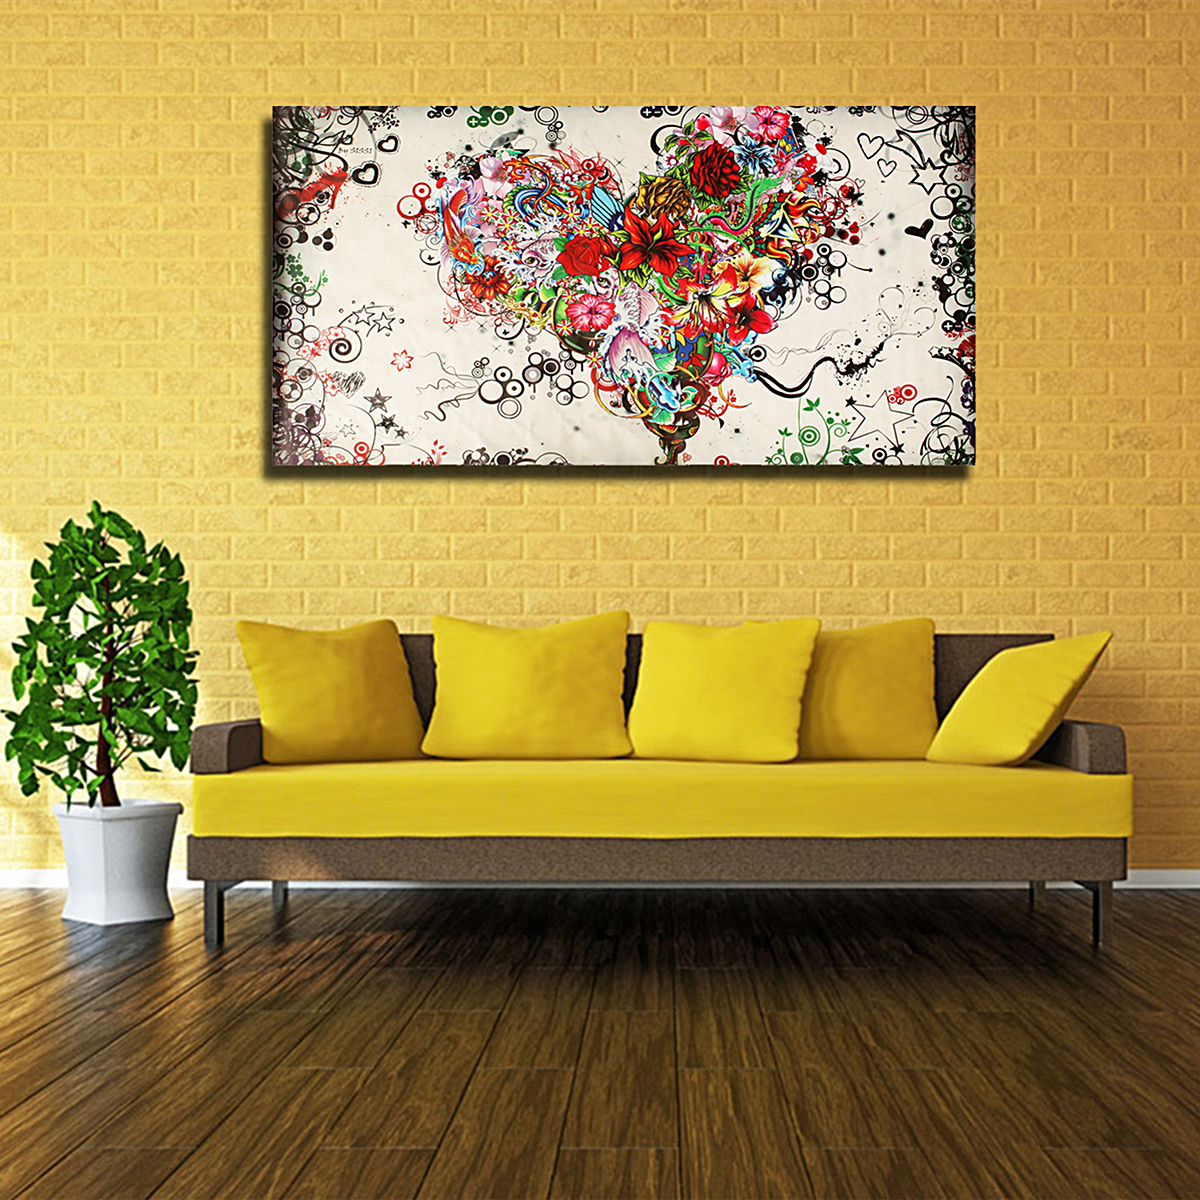 Living Room Paintings Art Large Modern Abstract Hand Painted Art Oil Painting Wall Decor